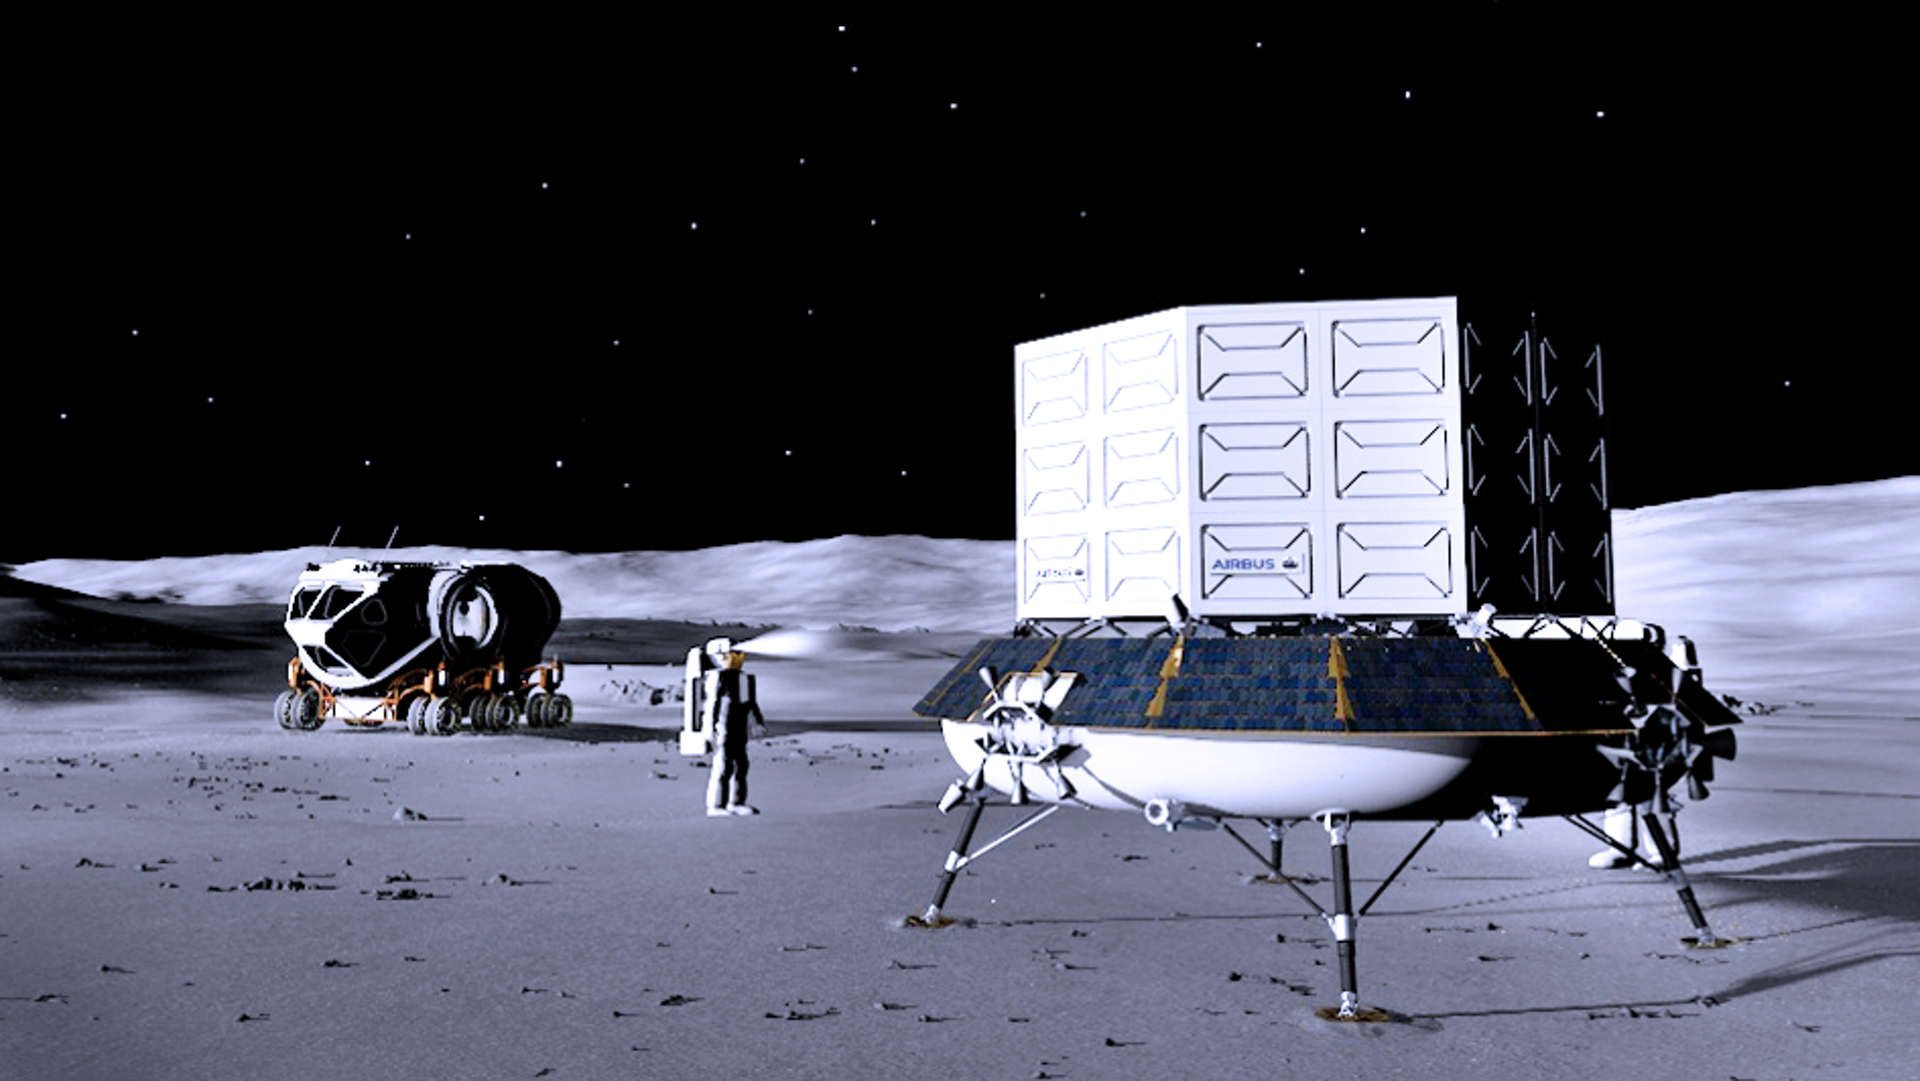 Airbus will develop the concept of a large multi-role logistic lander able to transport up to 1.7 tons of cargo to any location on the lunar surface.